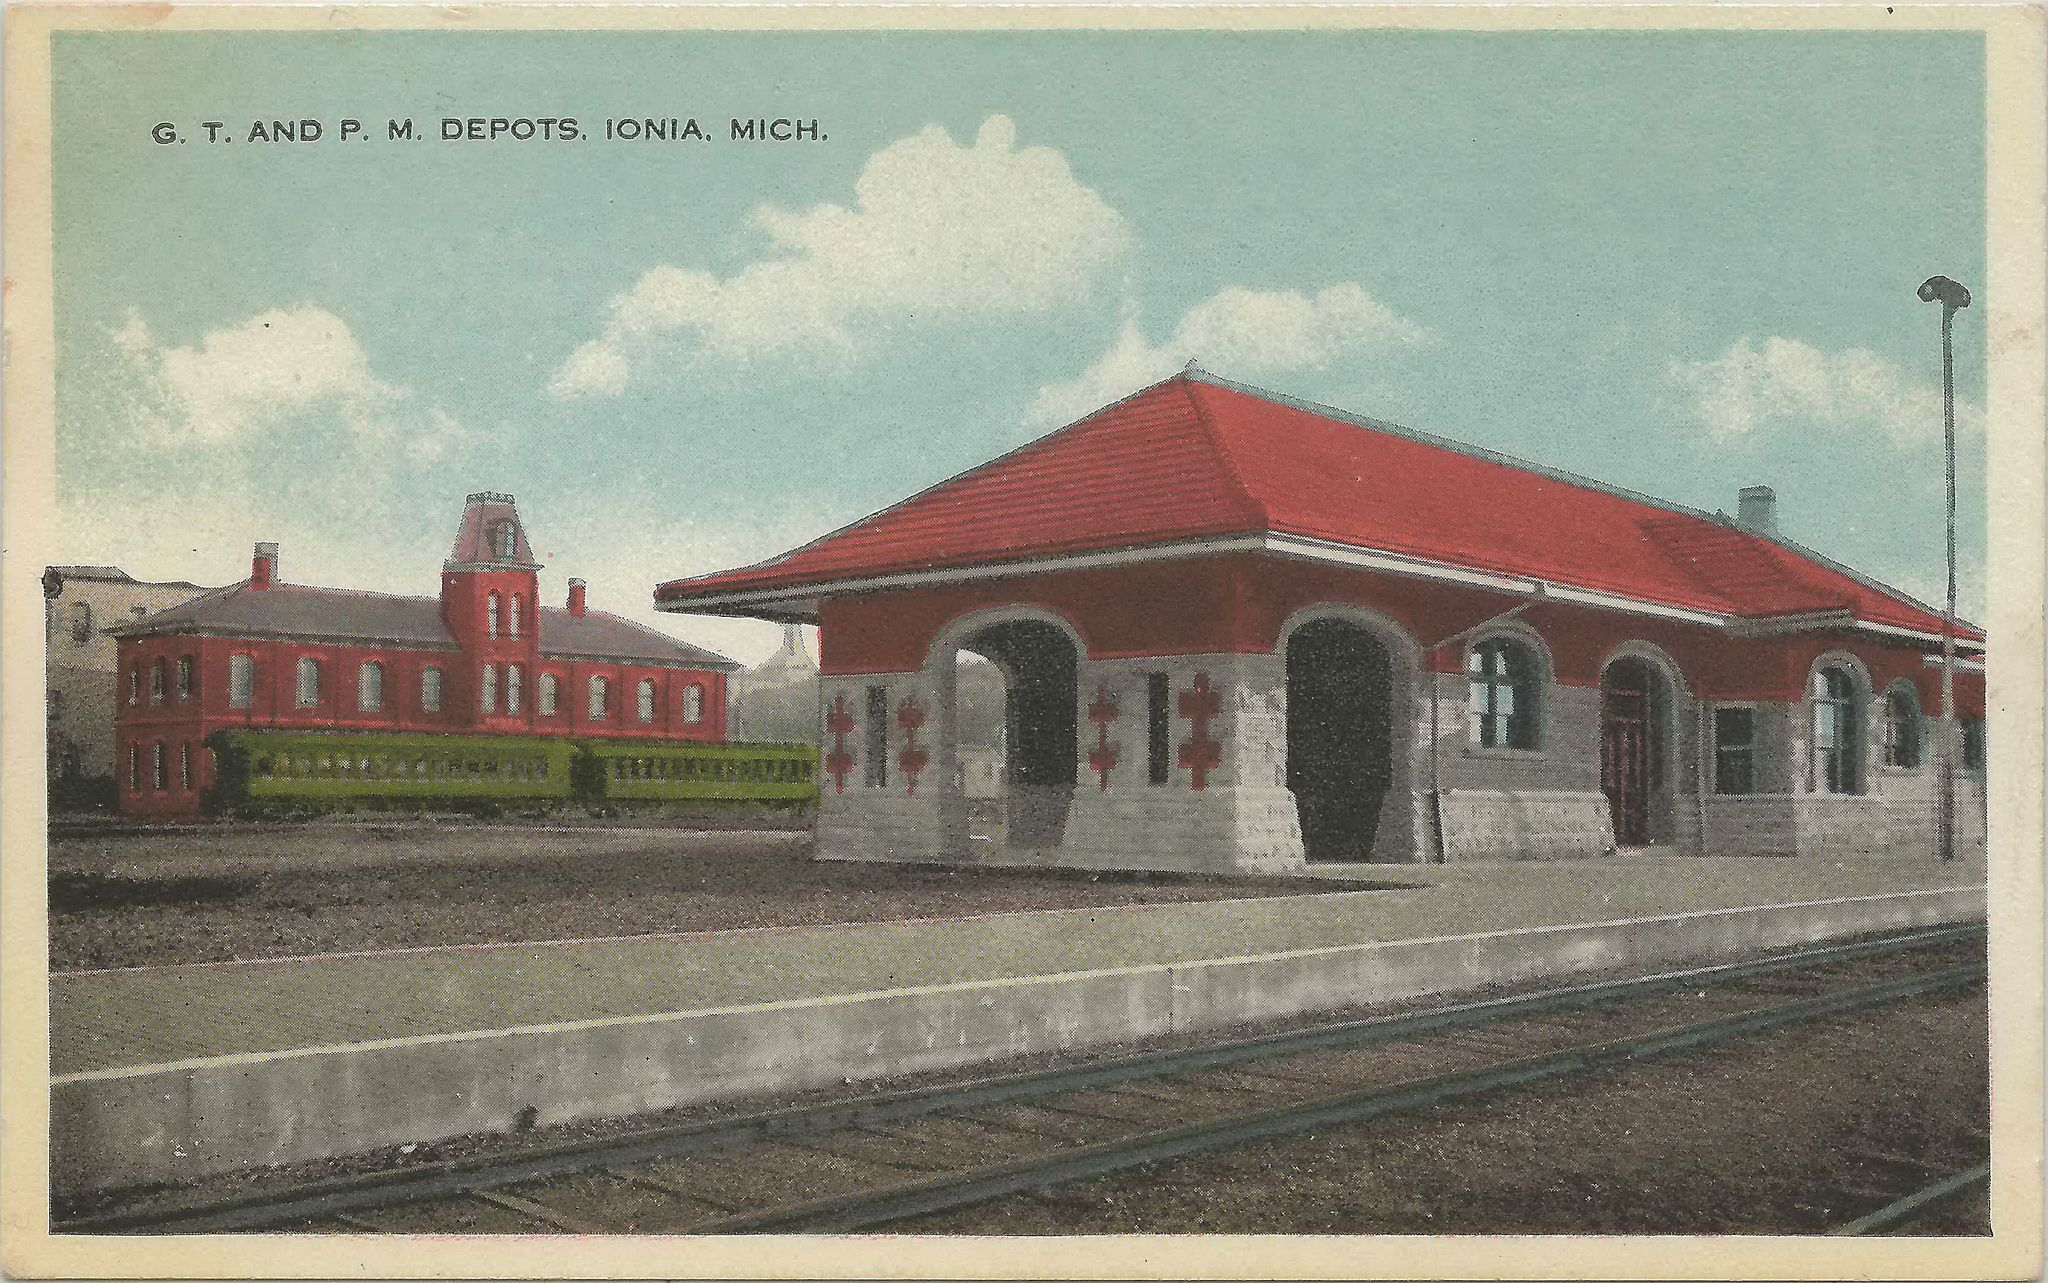 https://flic.kr/p/eREZJP | Ionia MI TWO DEPOTS GTWRR Grand Trunk RR and PMRR Pere Marquette Depot in the background Note the passenger train at the PM station